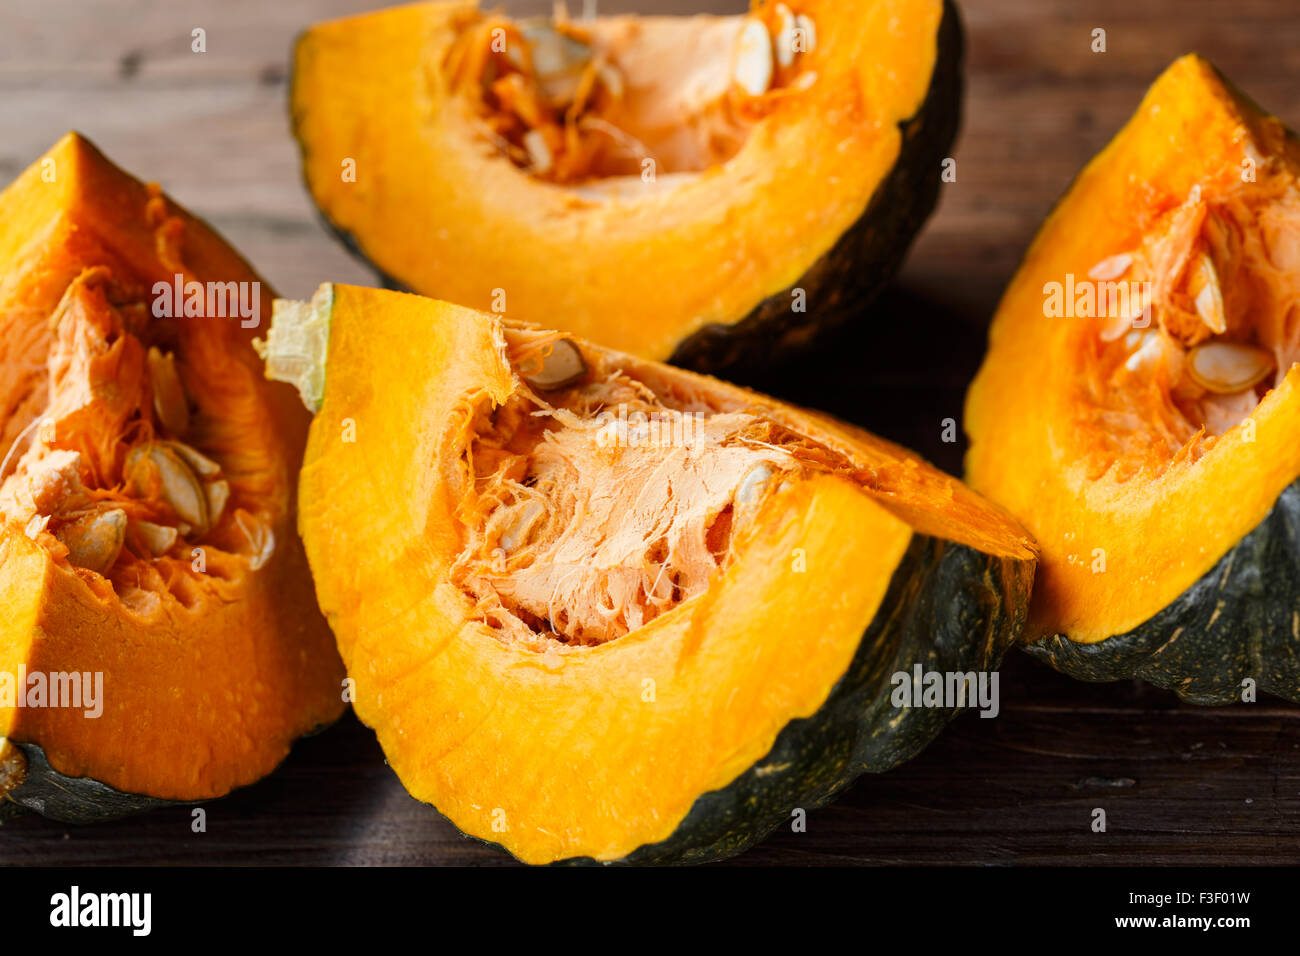 Slices of raw pumpkin - Stock Image